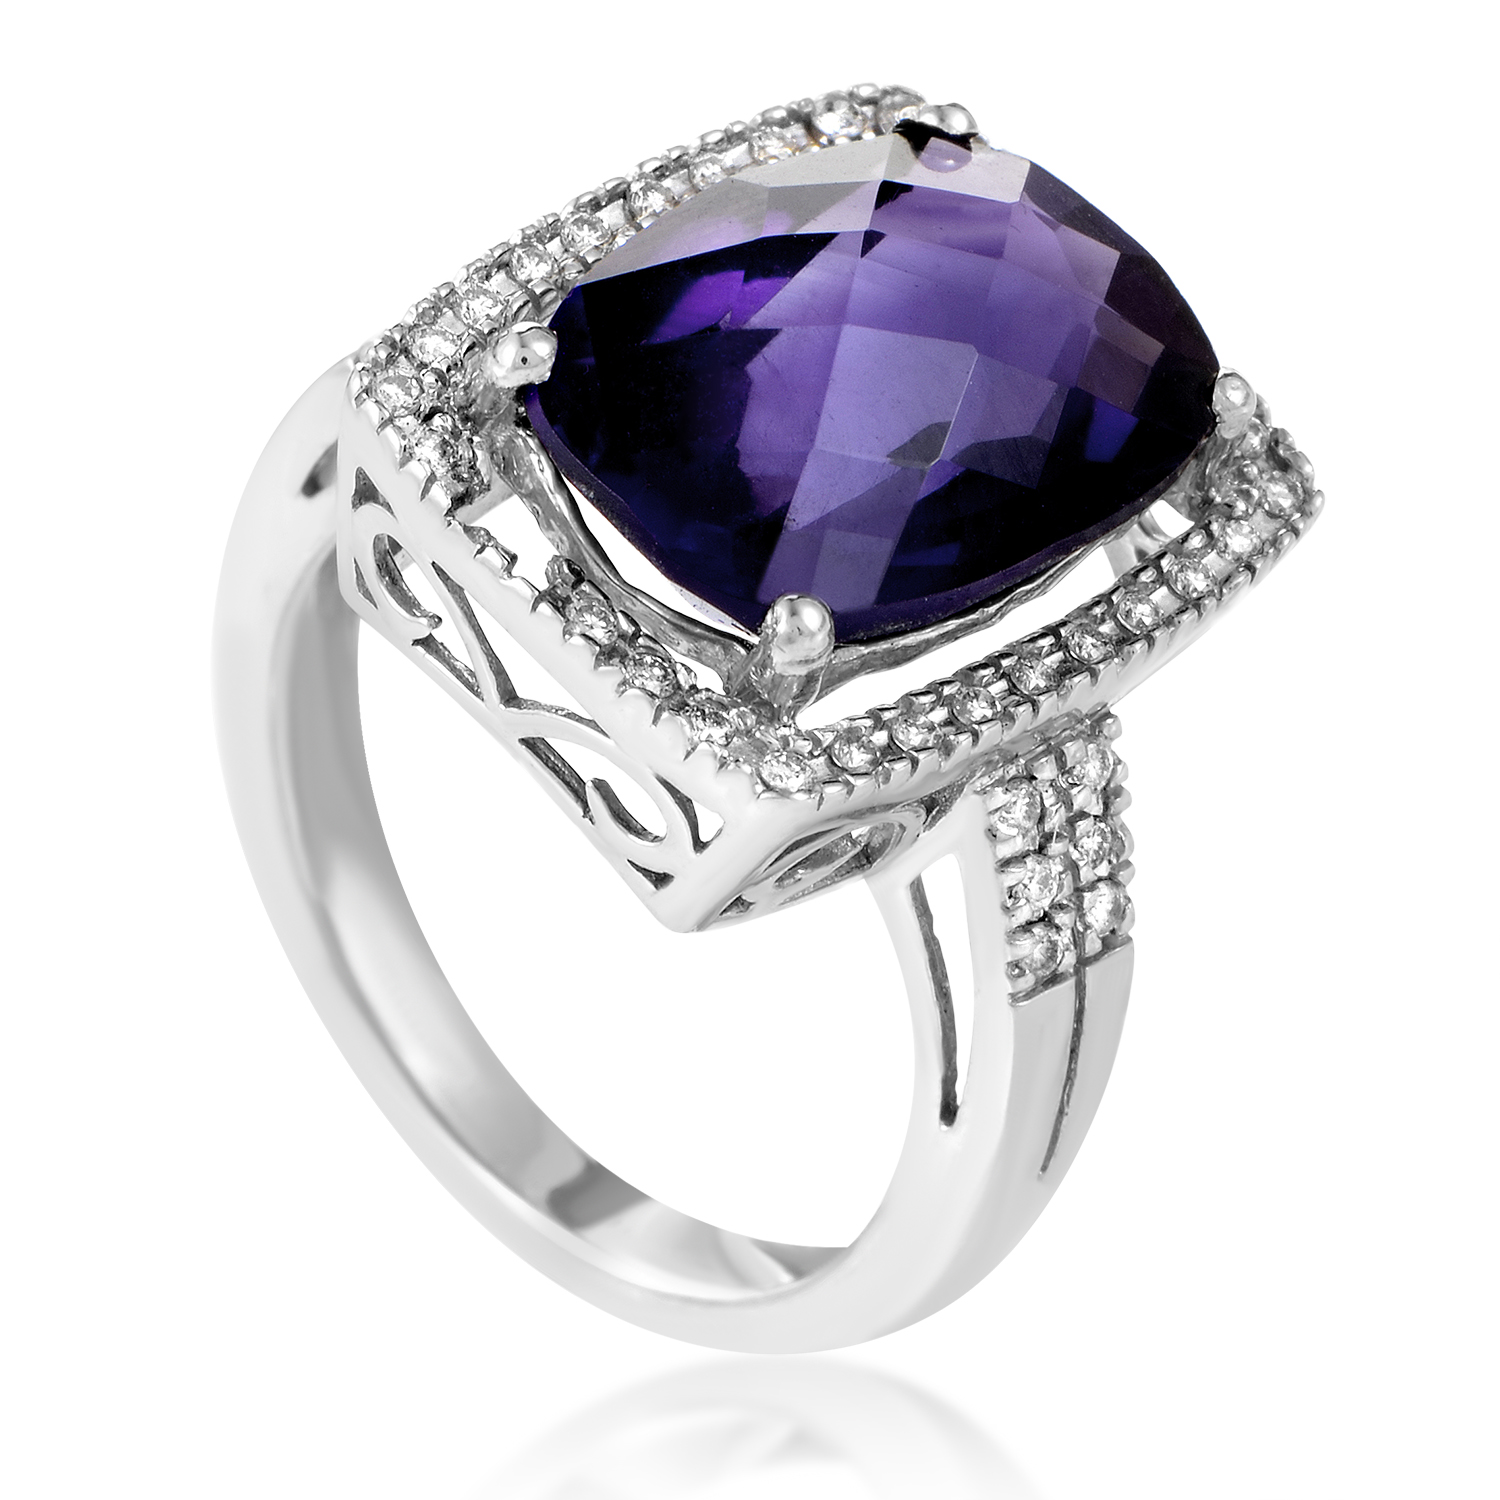 Women's 14K White Gold Diamond & Amethyst Cocktail Ring LB4-02475WAM